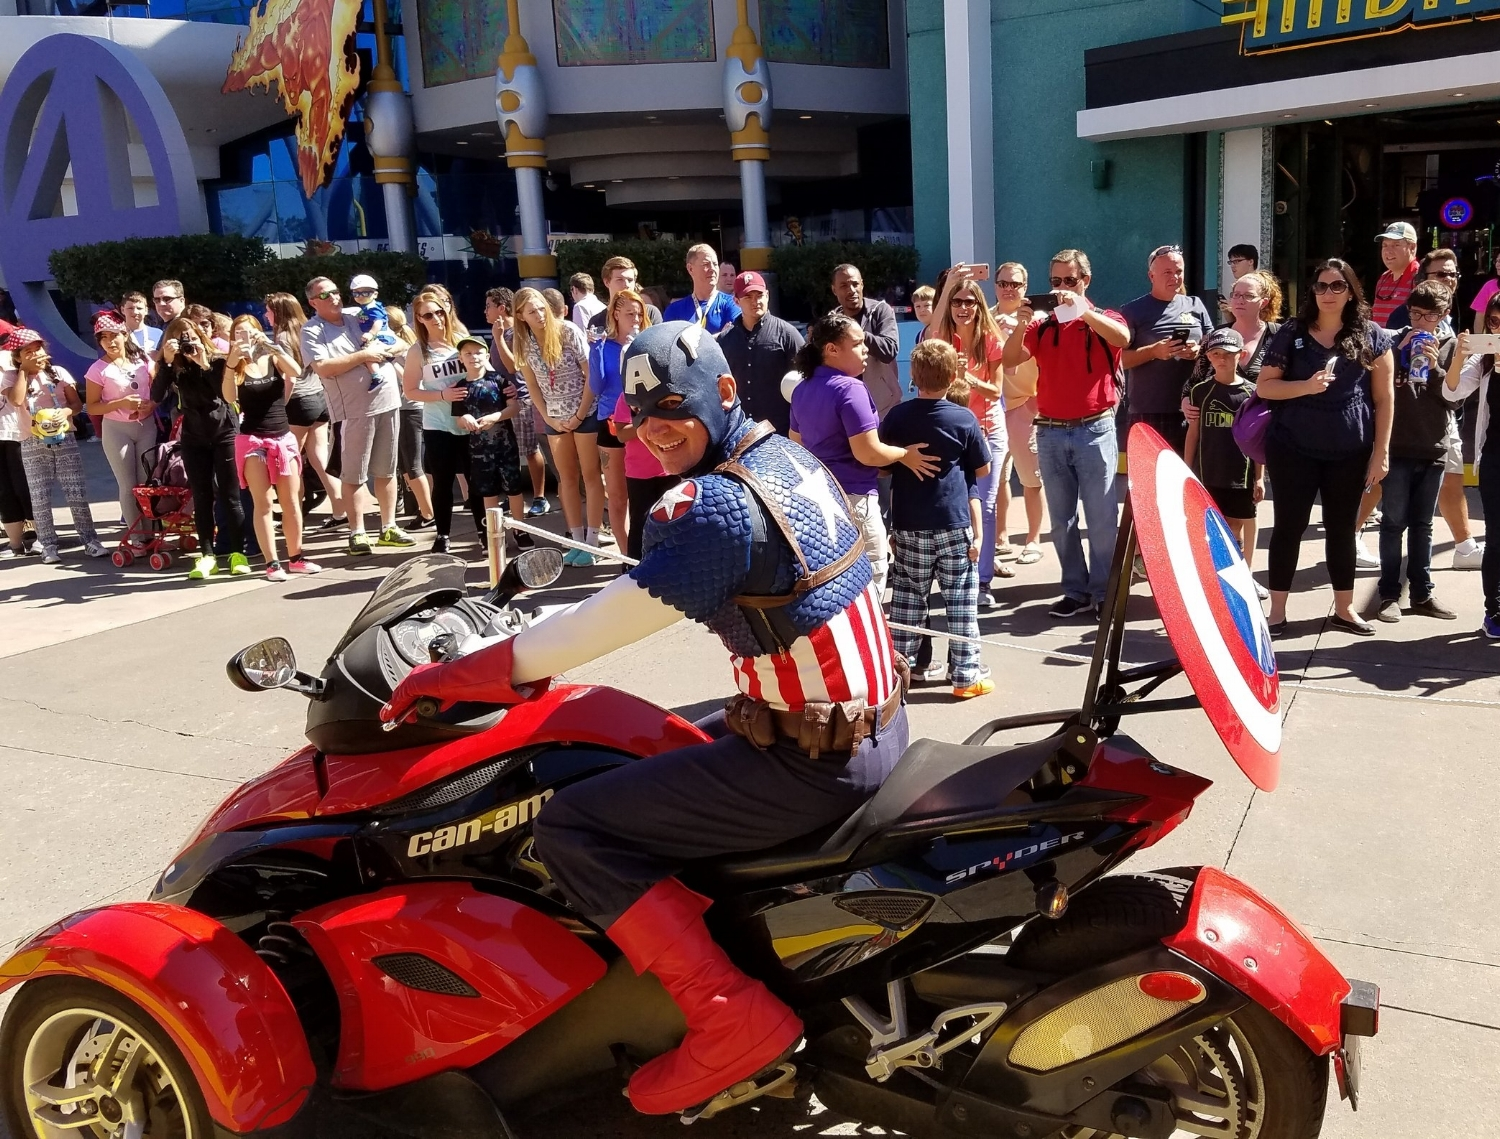 Captain America on his Can-Am Spyder